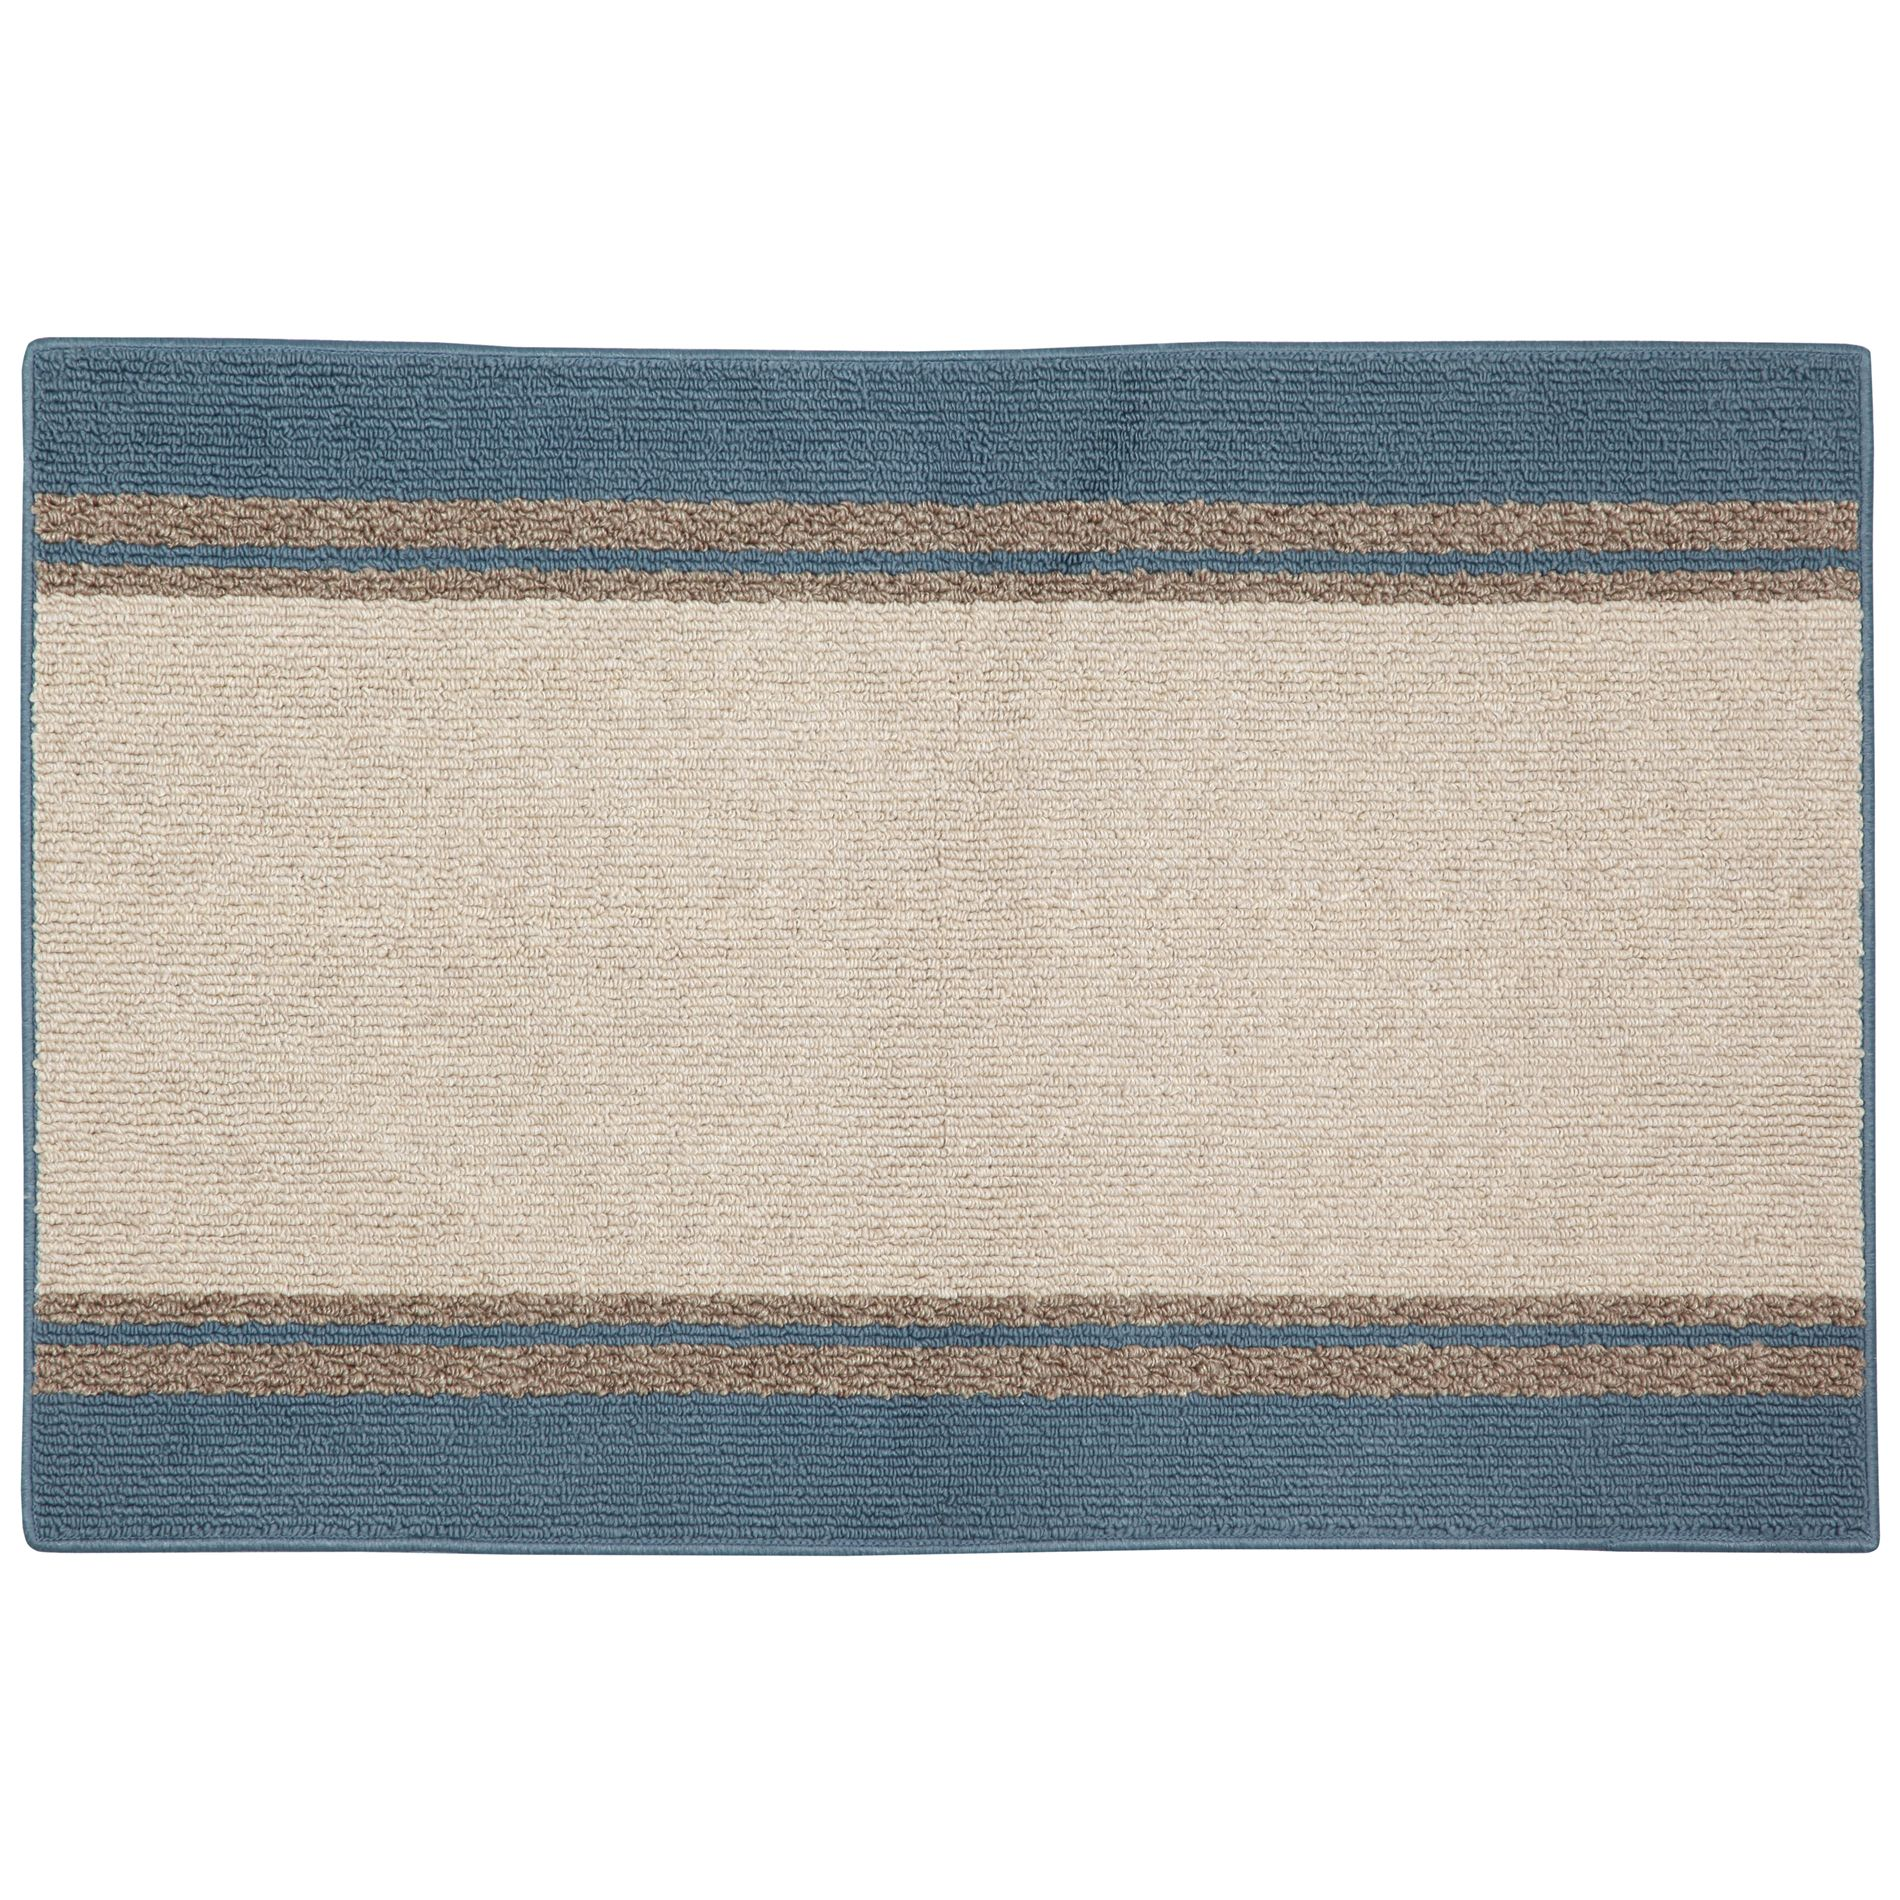 Nueva Stripe 24in x 42in Area Rug - Stellar Blue                                                                                 at mygofer.com